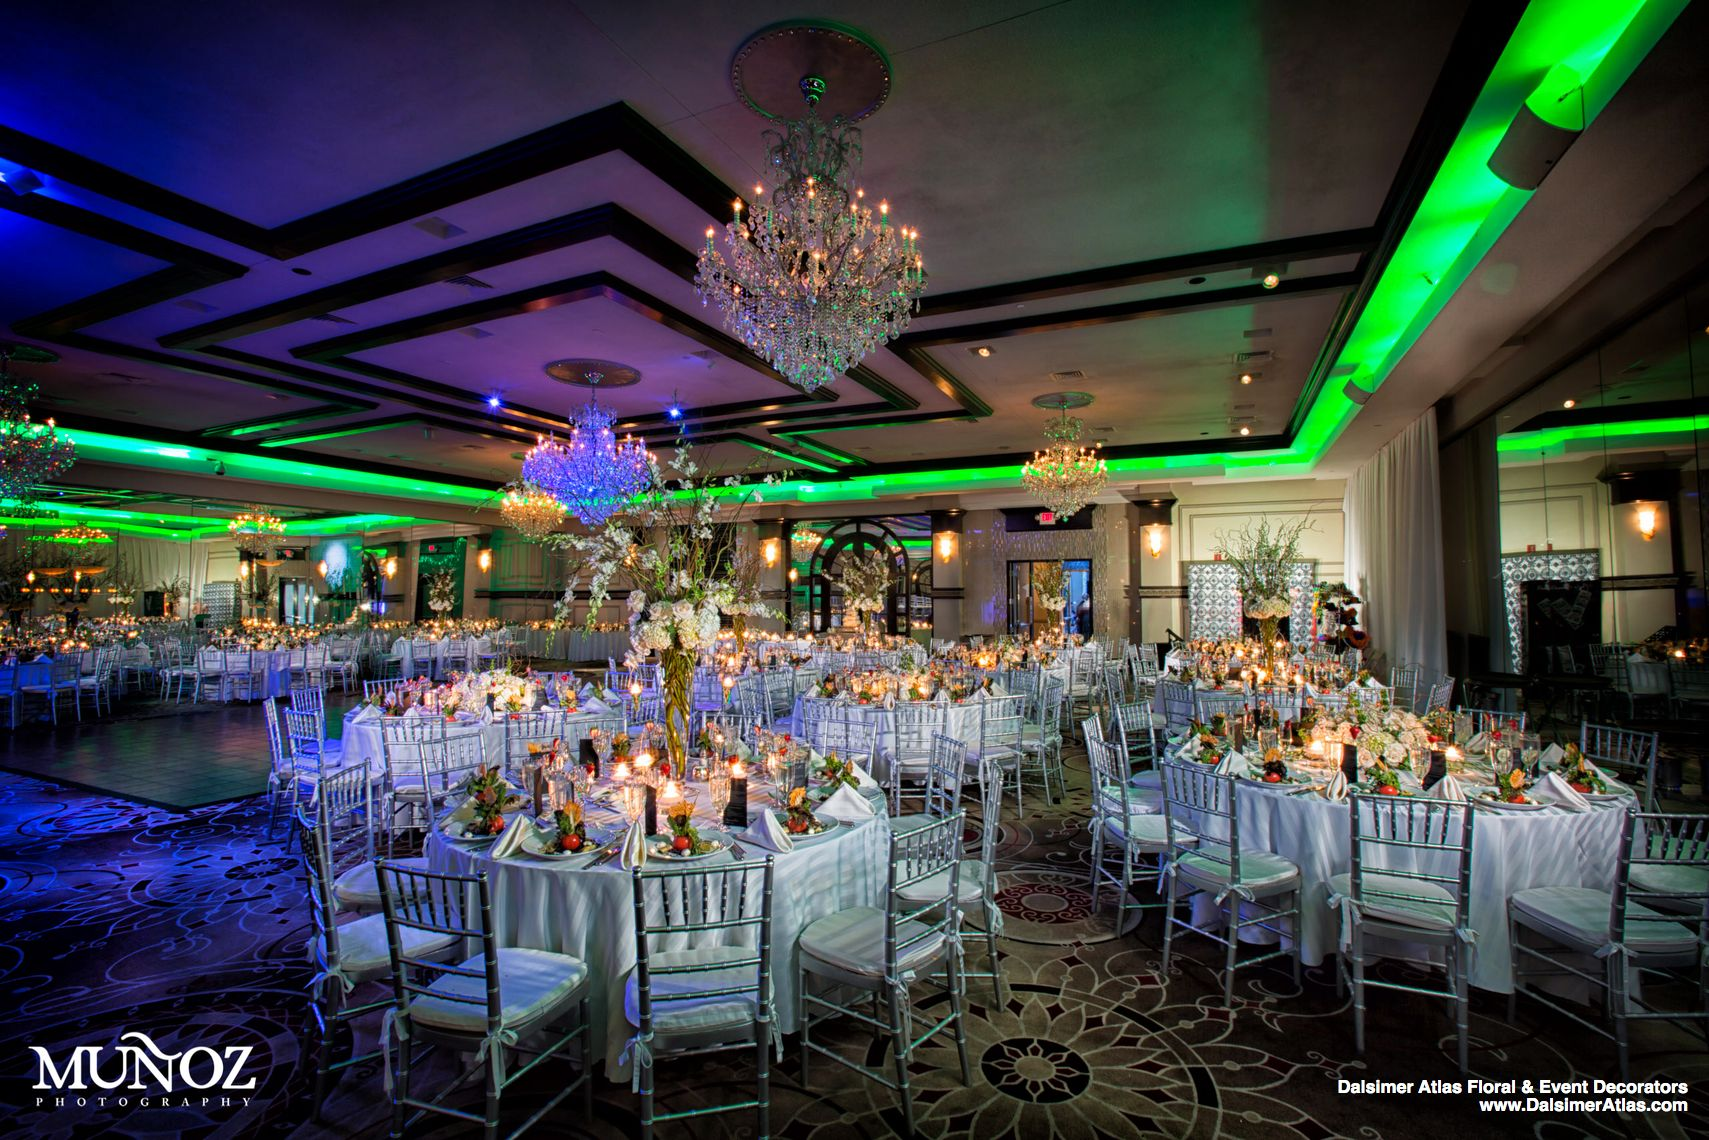 wedding-florist-flowers-decorations-wedding-bnai-israel-boca-raton-florida-dalsimer-atlas-21